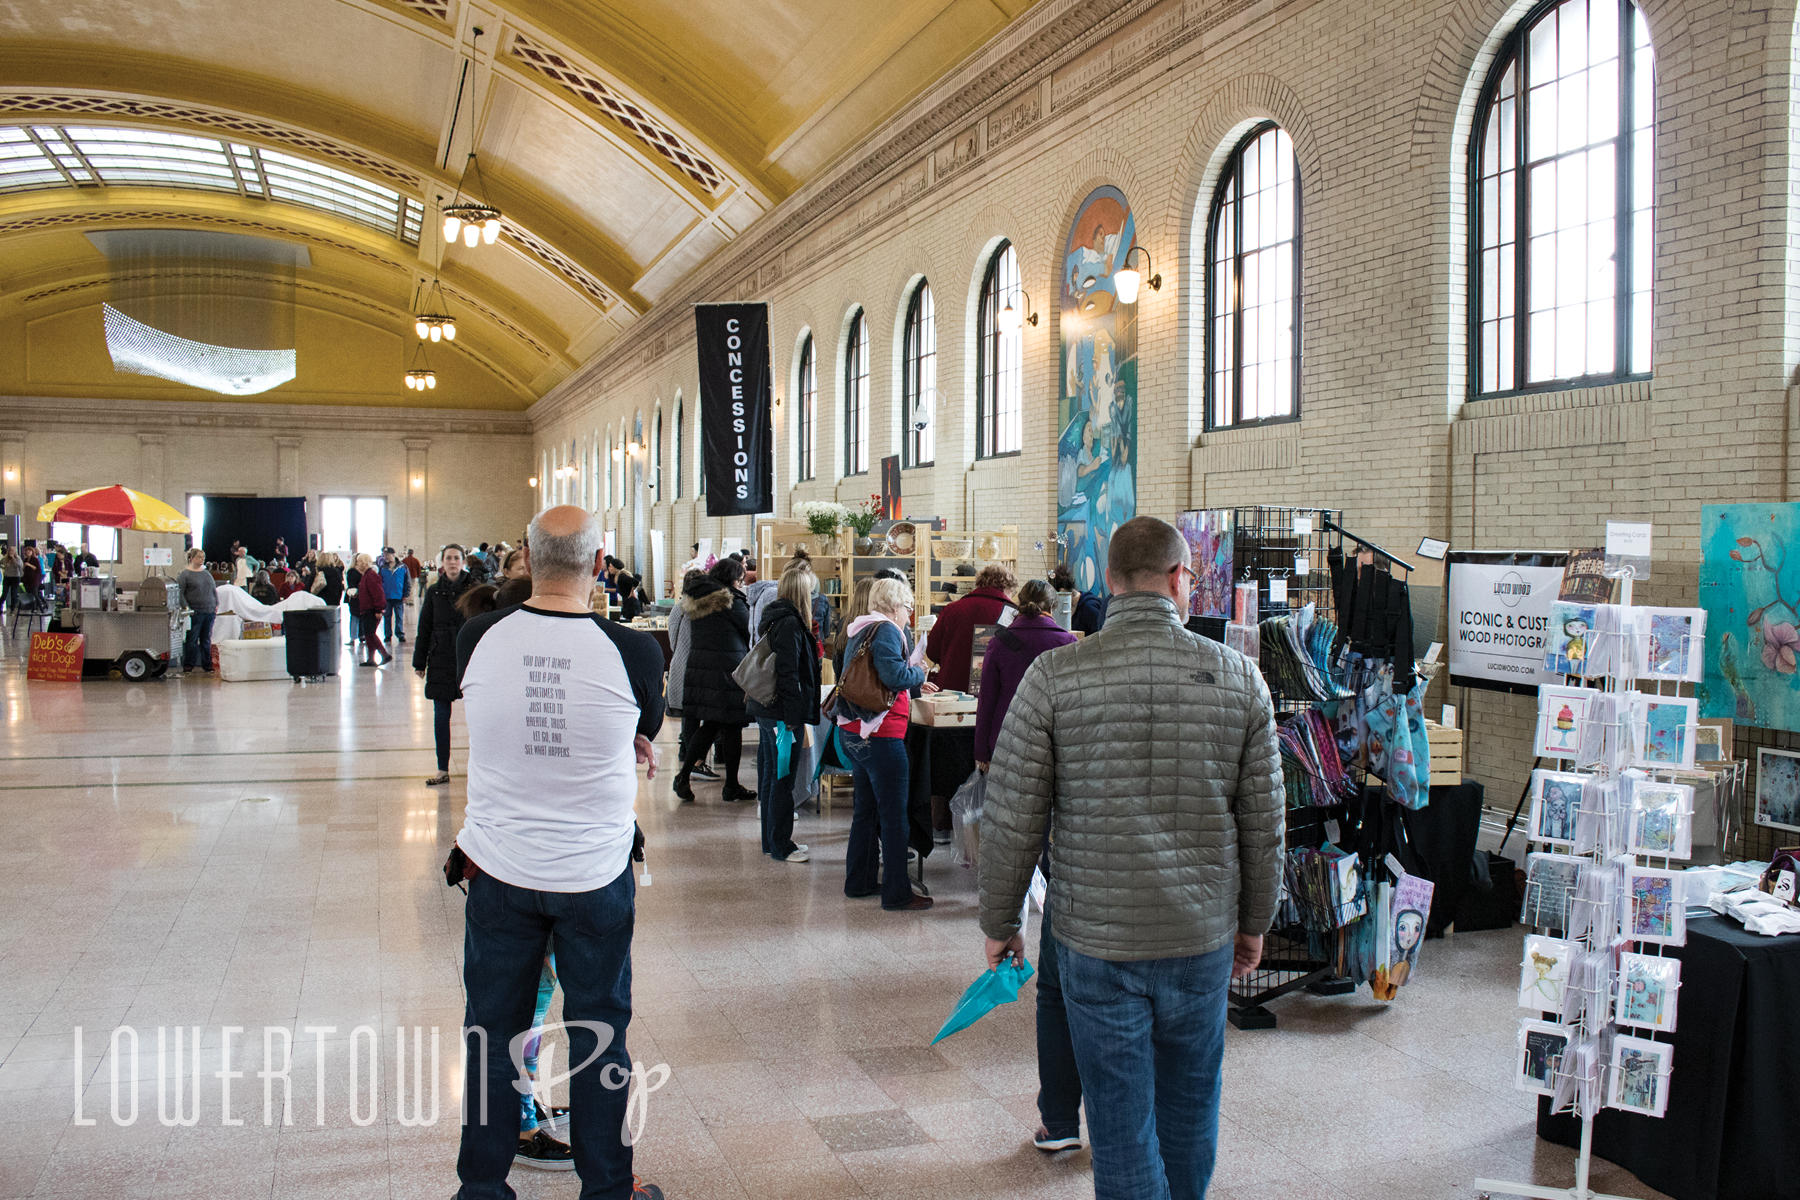 City Pages Tix | 4th annual Lowertown Pop at Union Depot